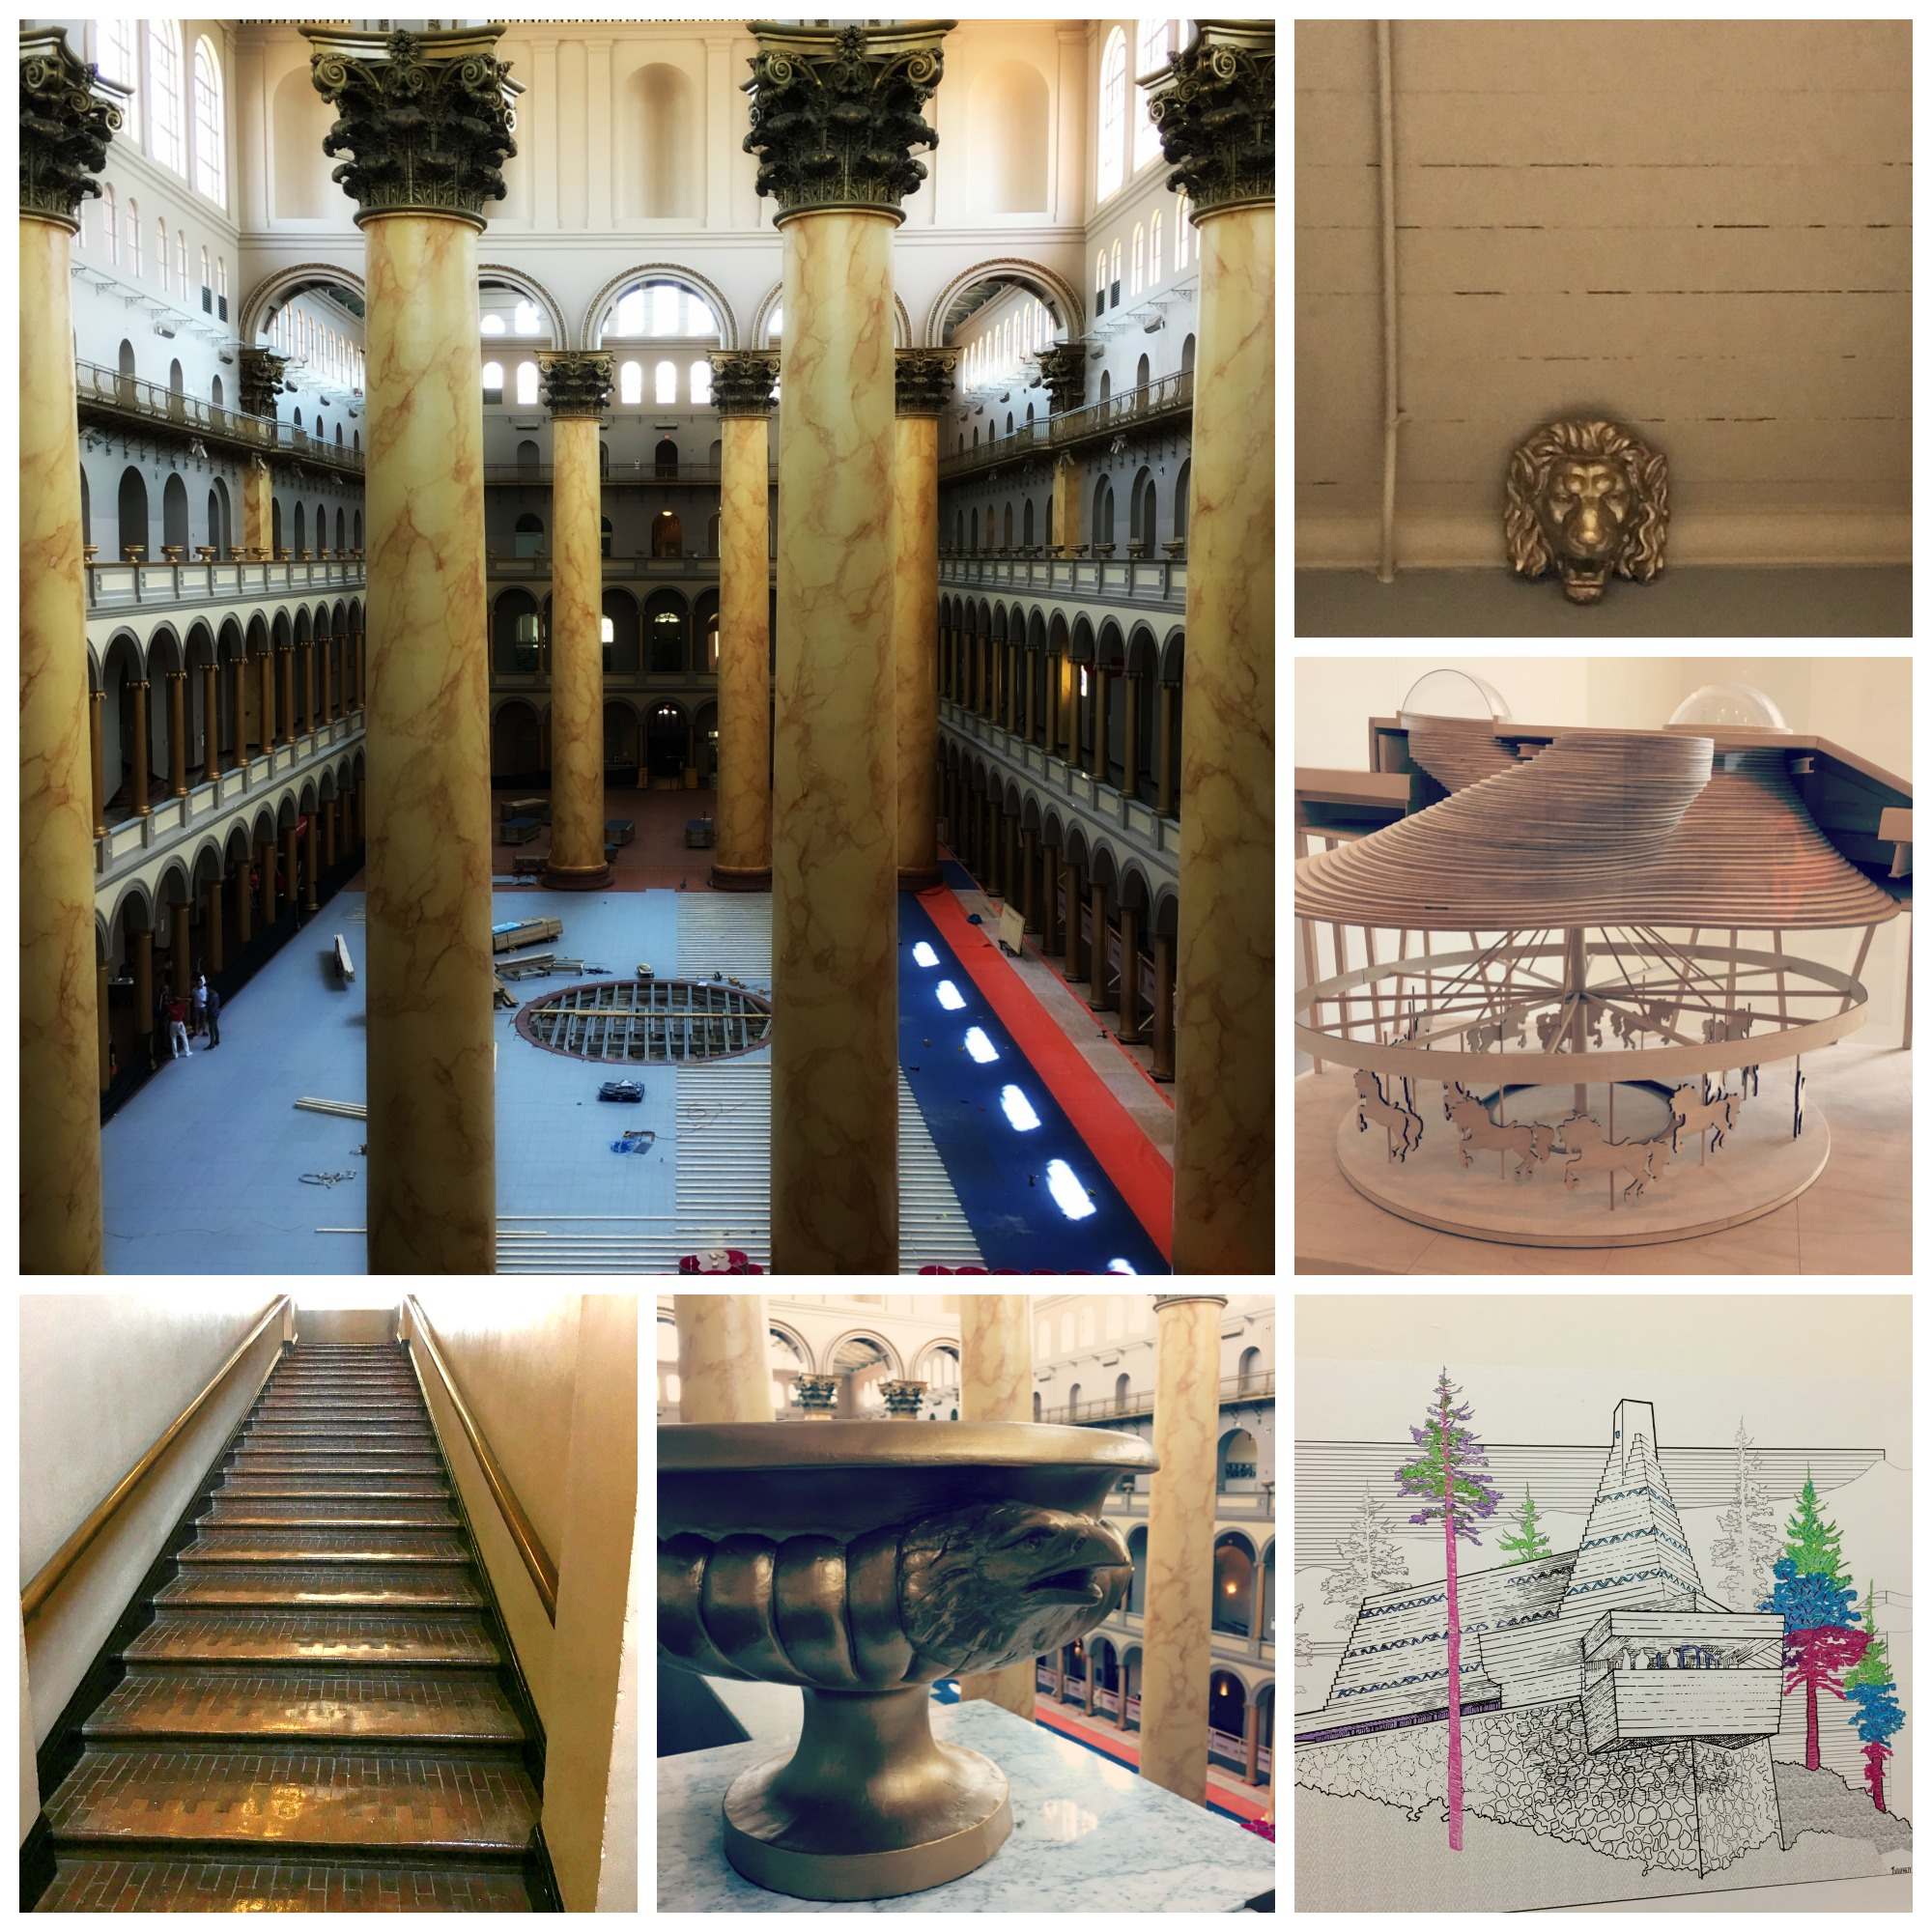 We love museums! - We went to the National Building Museum to see the Frank Lloyd Wright exhibit and draw on the walls.